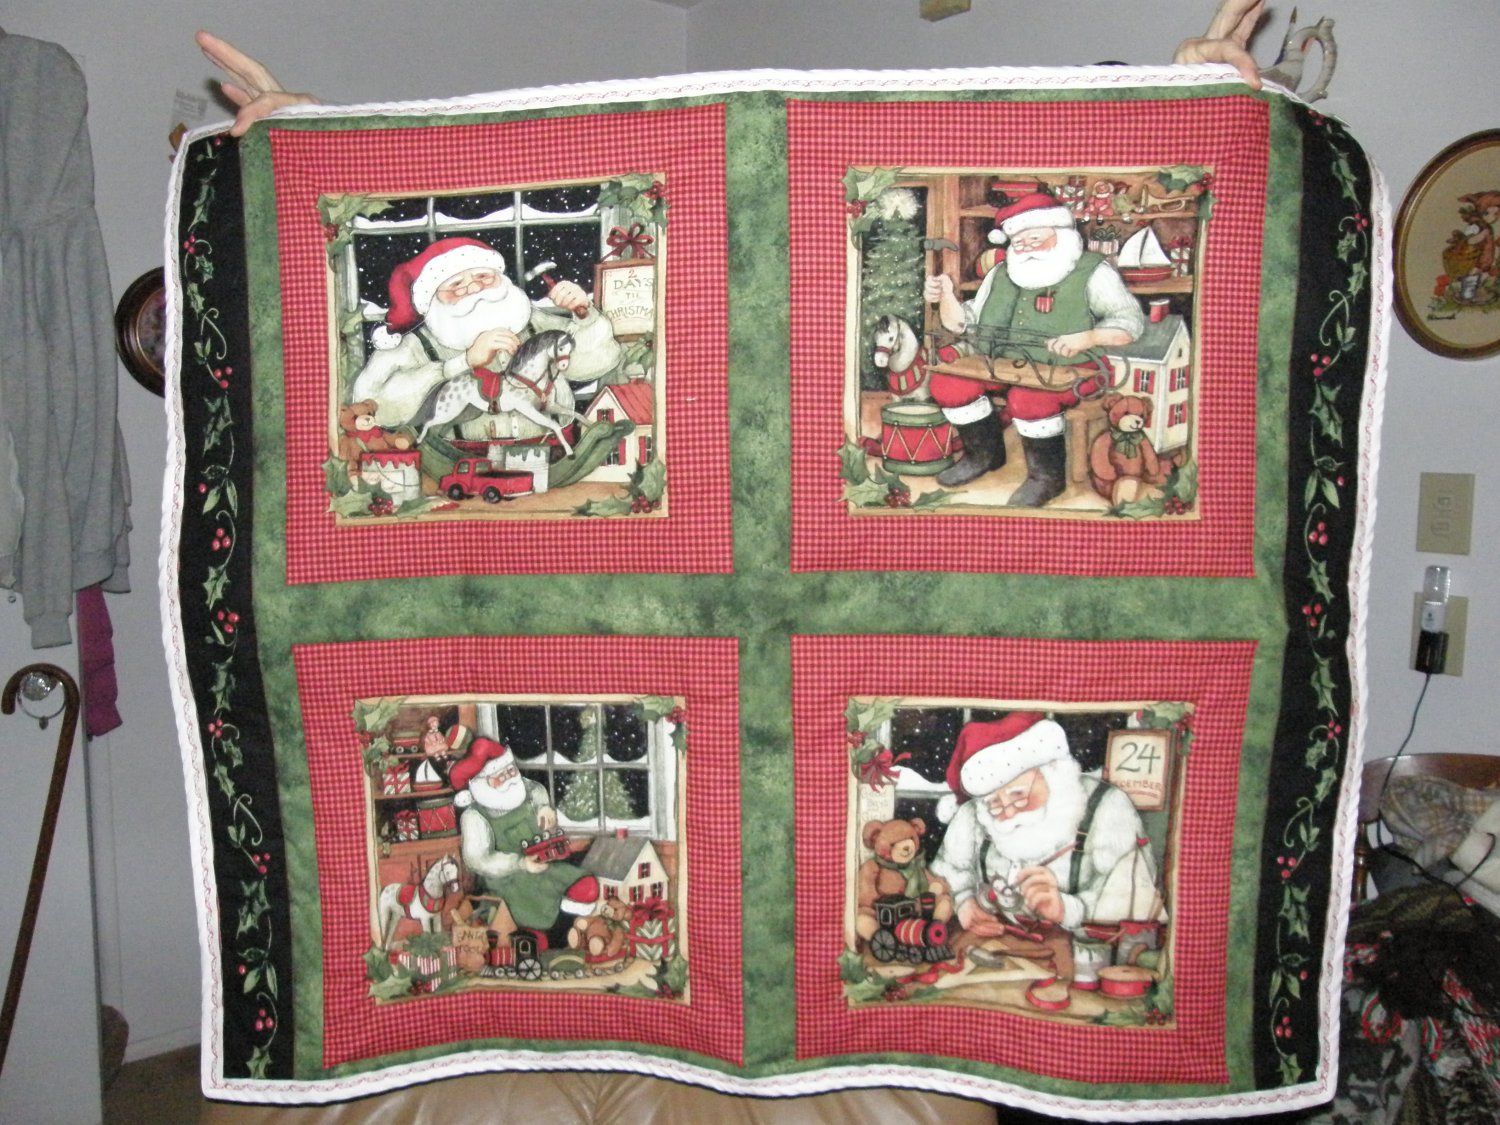 $40.50  Santa Quilt - 35 X 42 Inches - Back is Holly on White Cotton